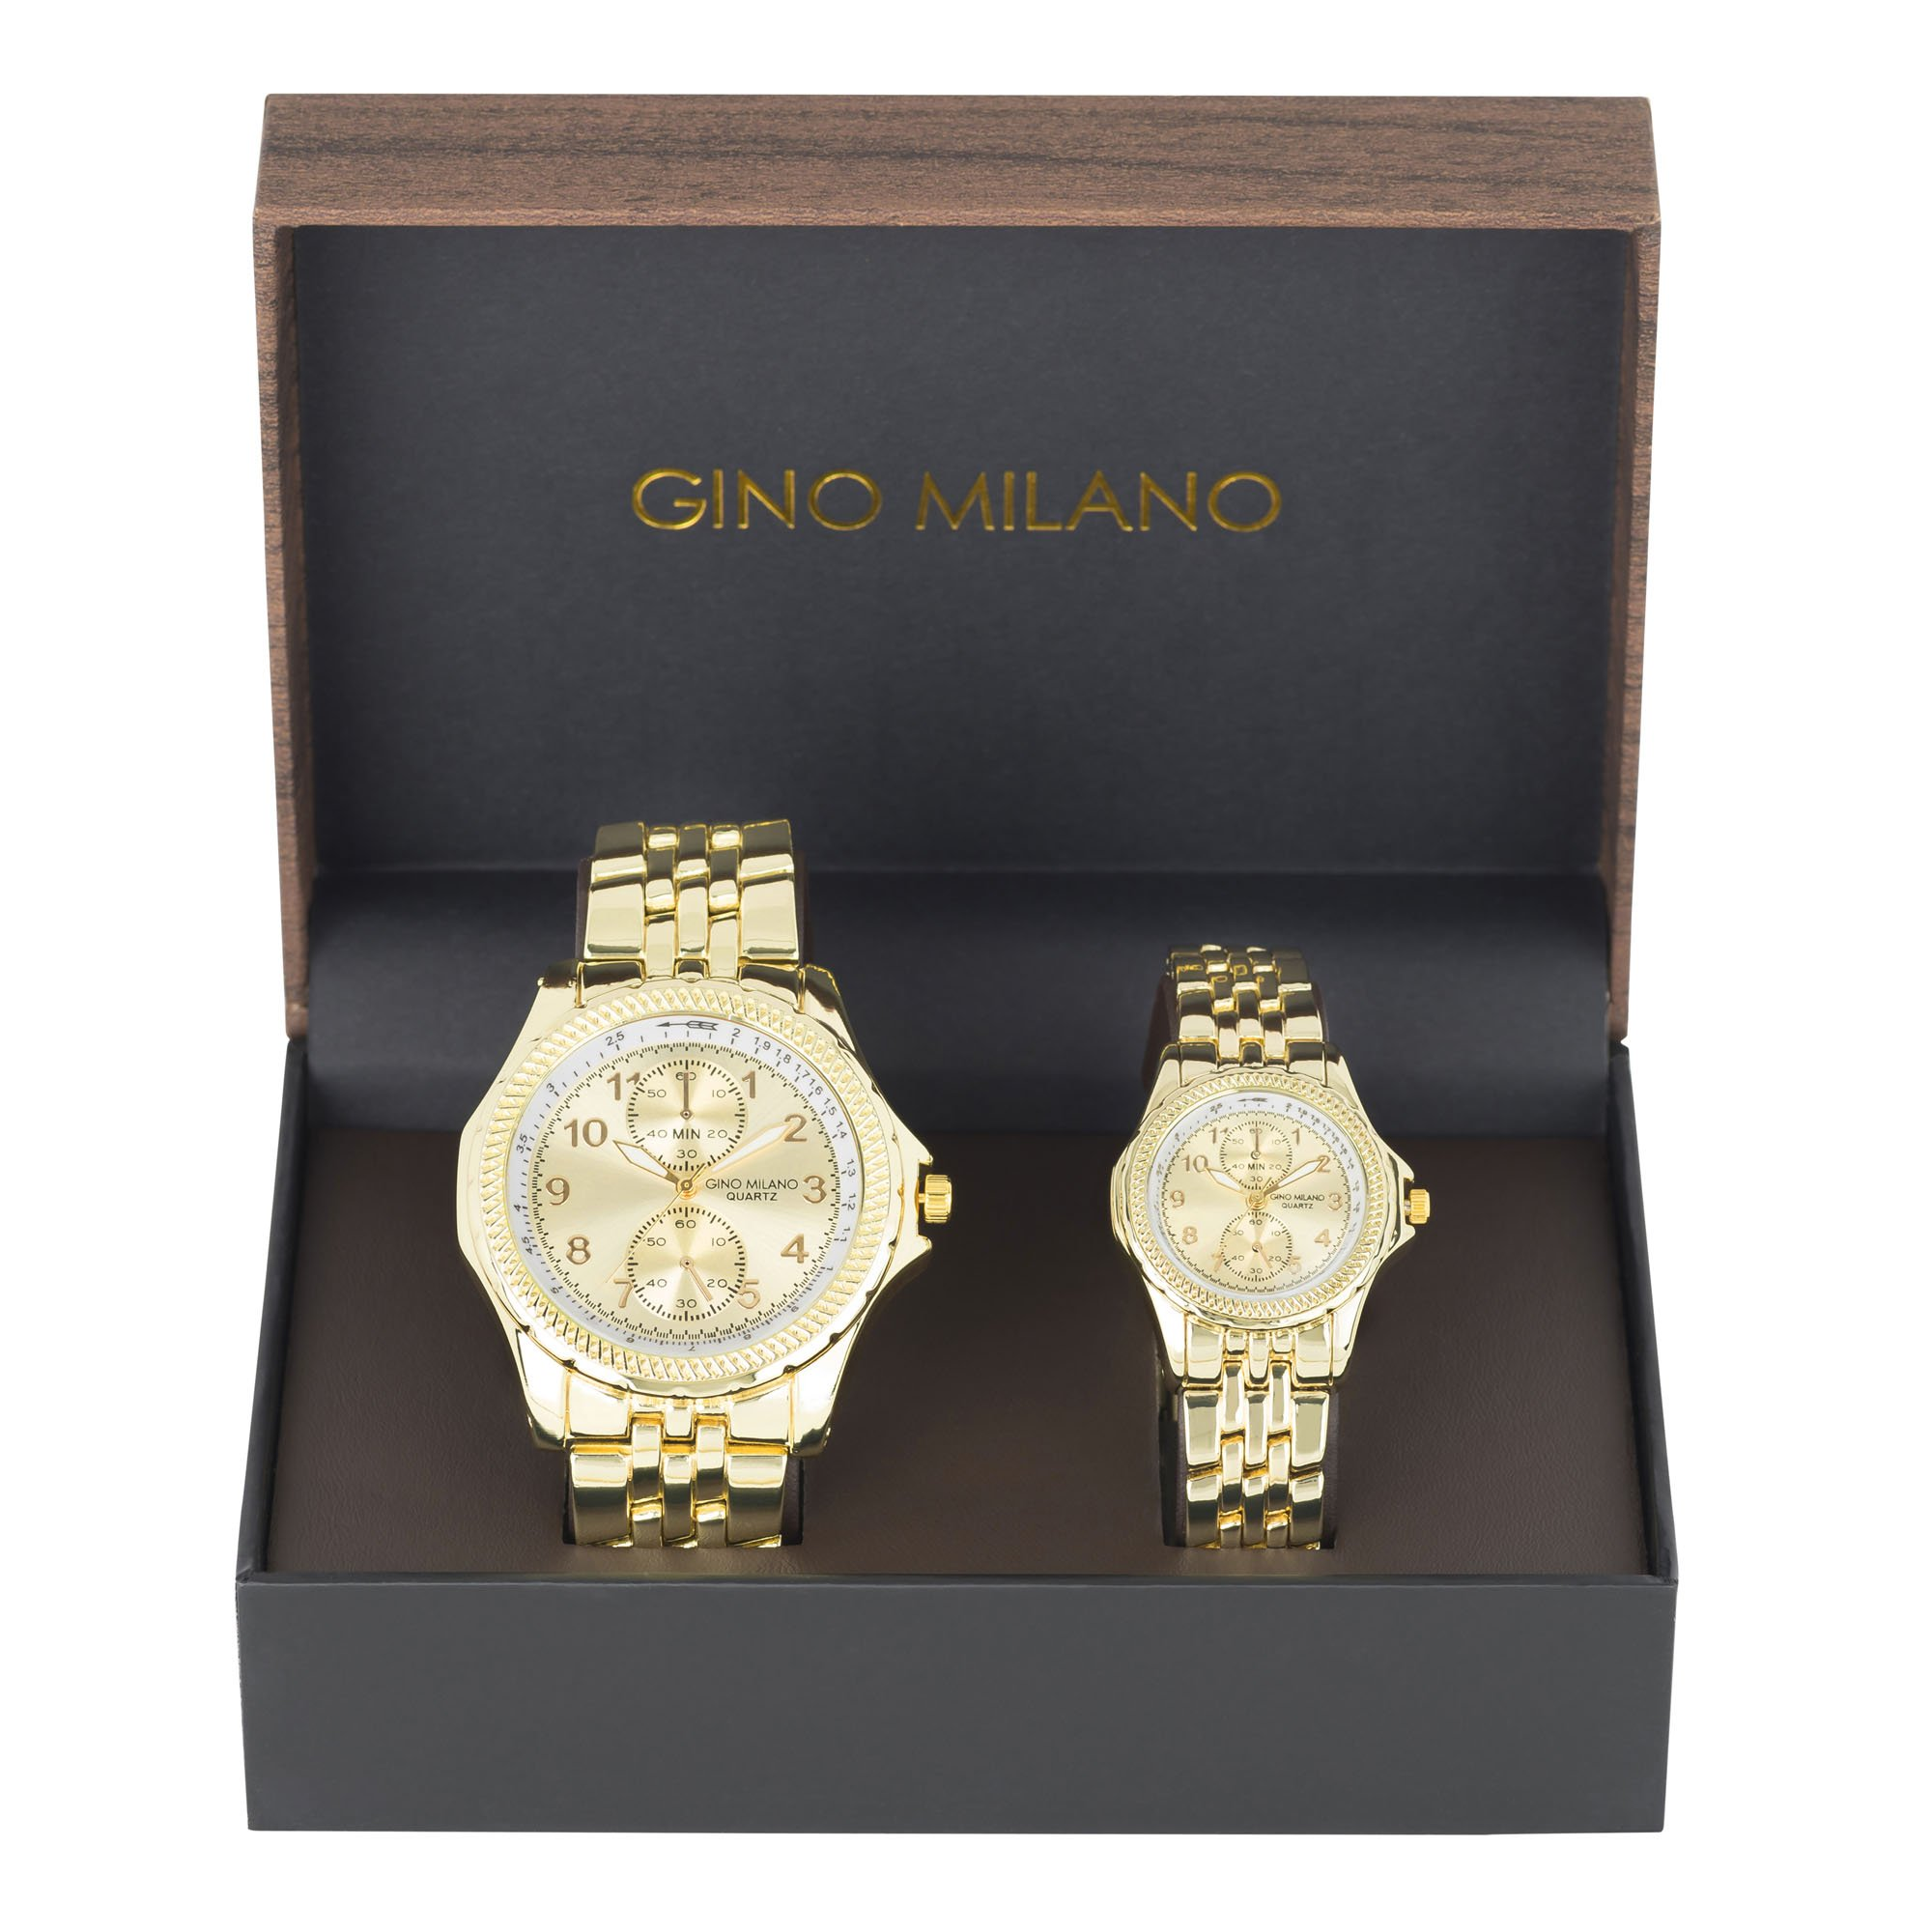 His and Her Watch Sets - 2 Piece Matching Gift Set by Gino Milano with Gift Box-6883 Gold by Gino Milano (Image #1)